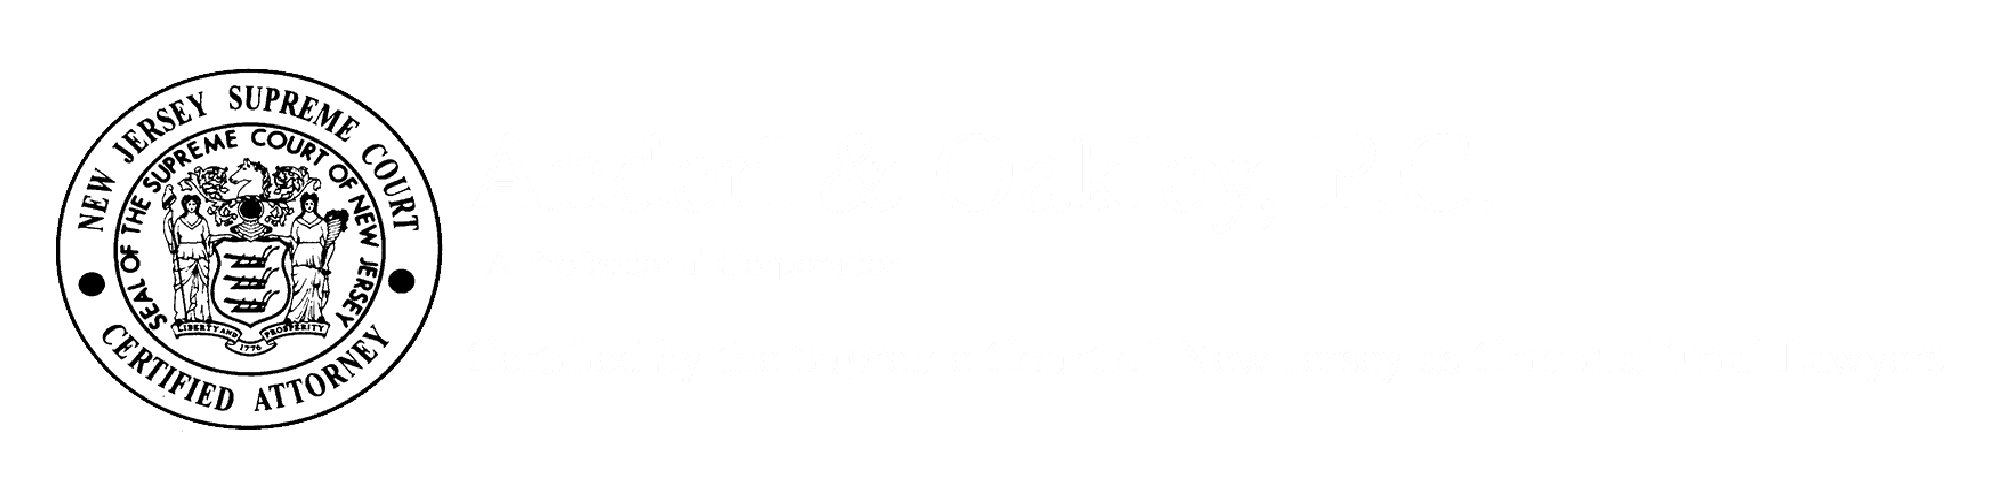 About New Jersey Criminal Defense Attorneys Mark Anderl David Oakley